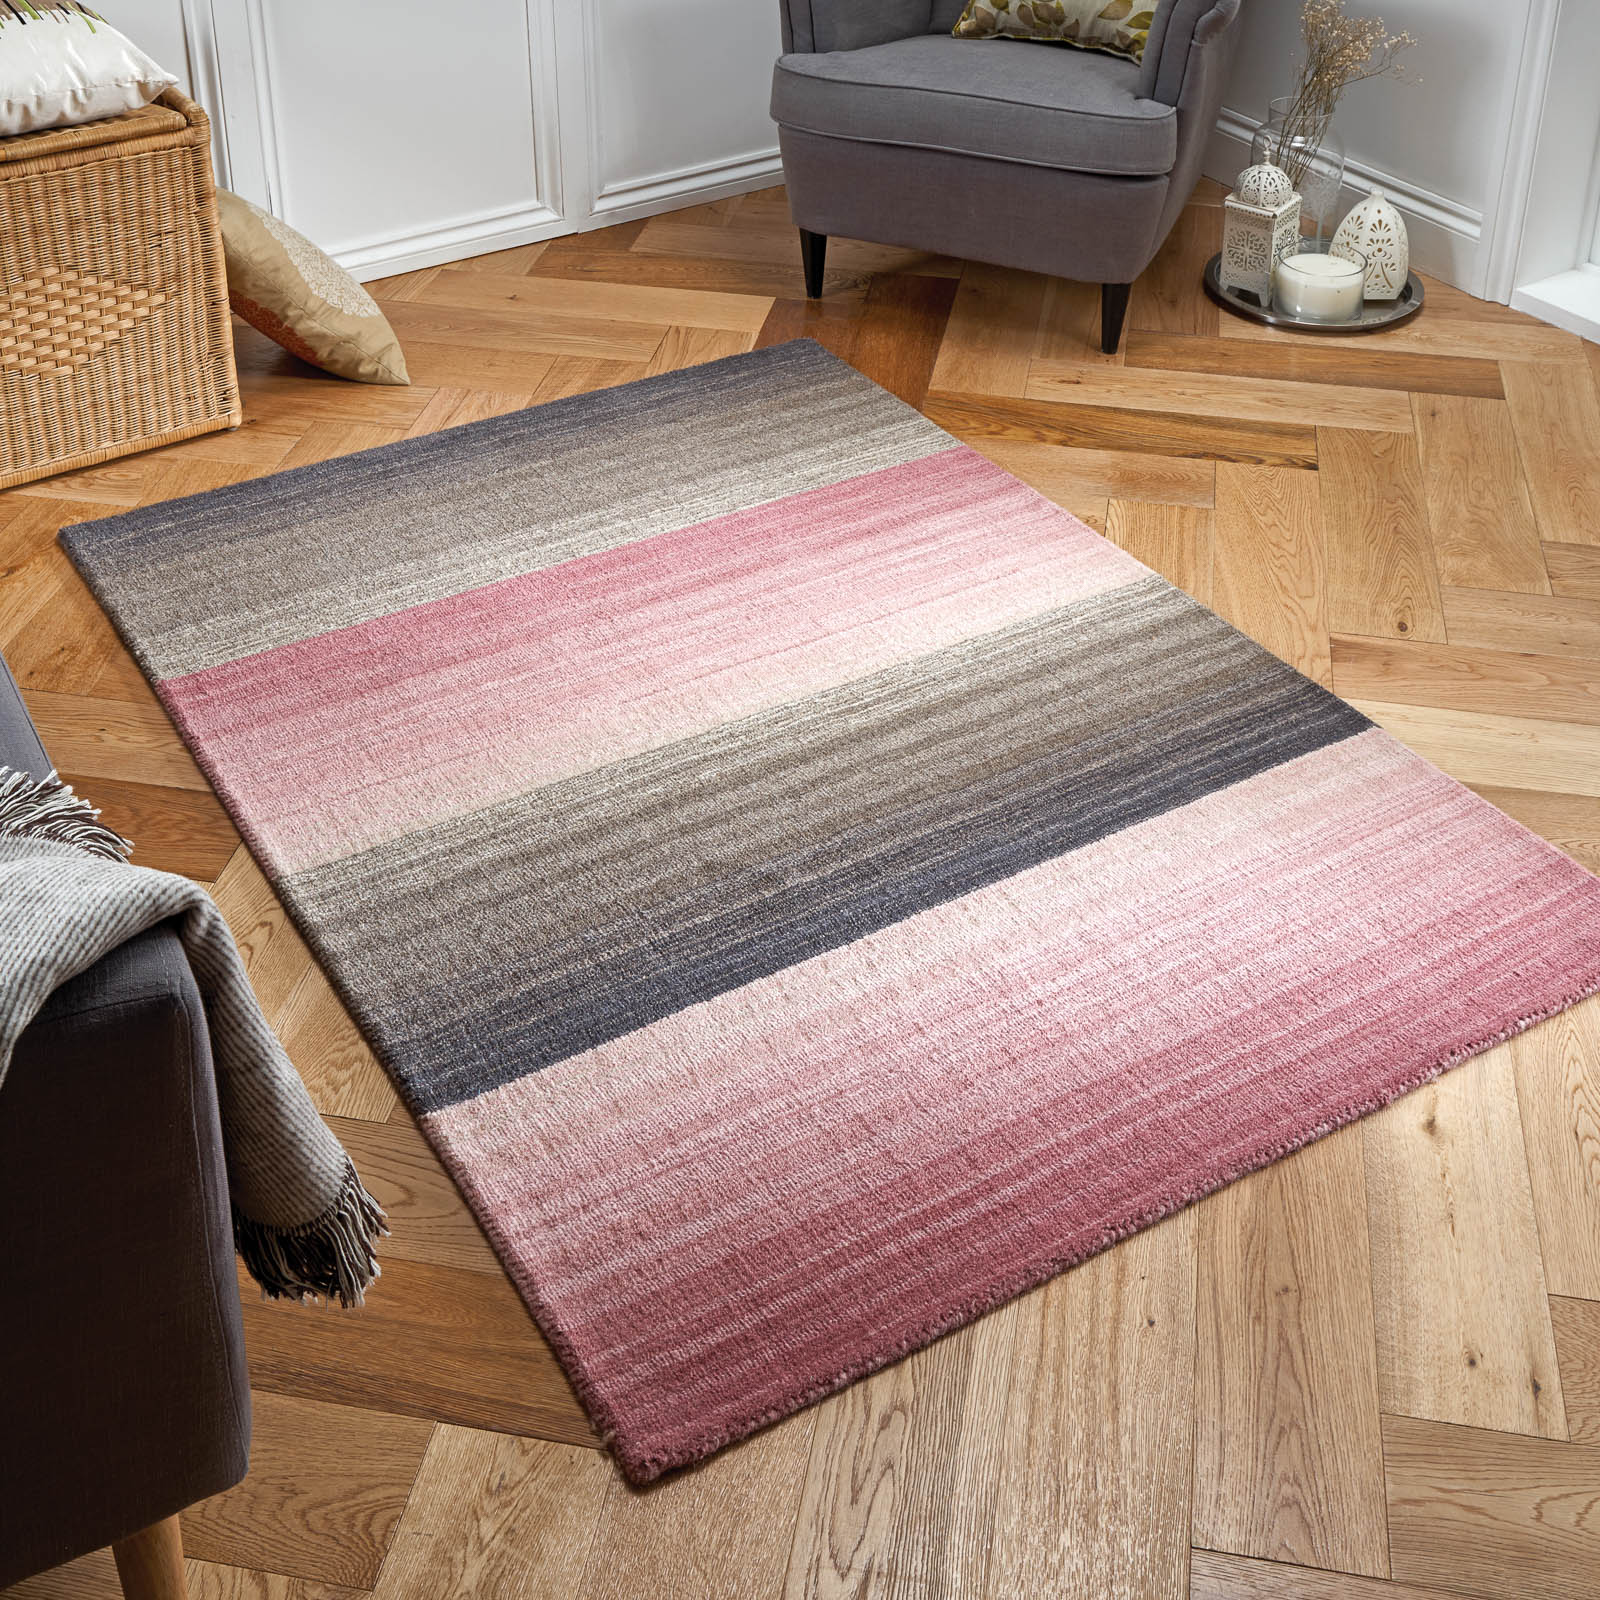 Miko Stripe Rugs in Mauve